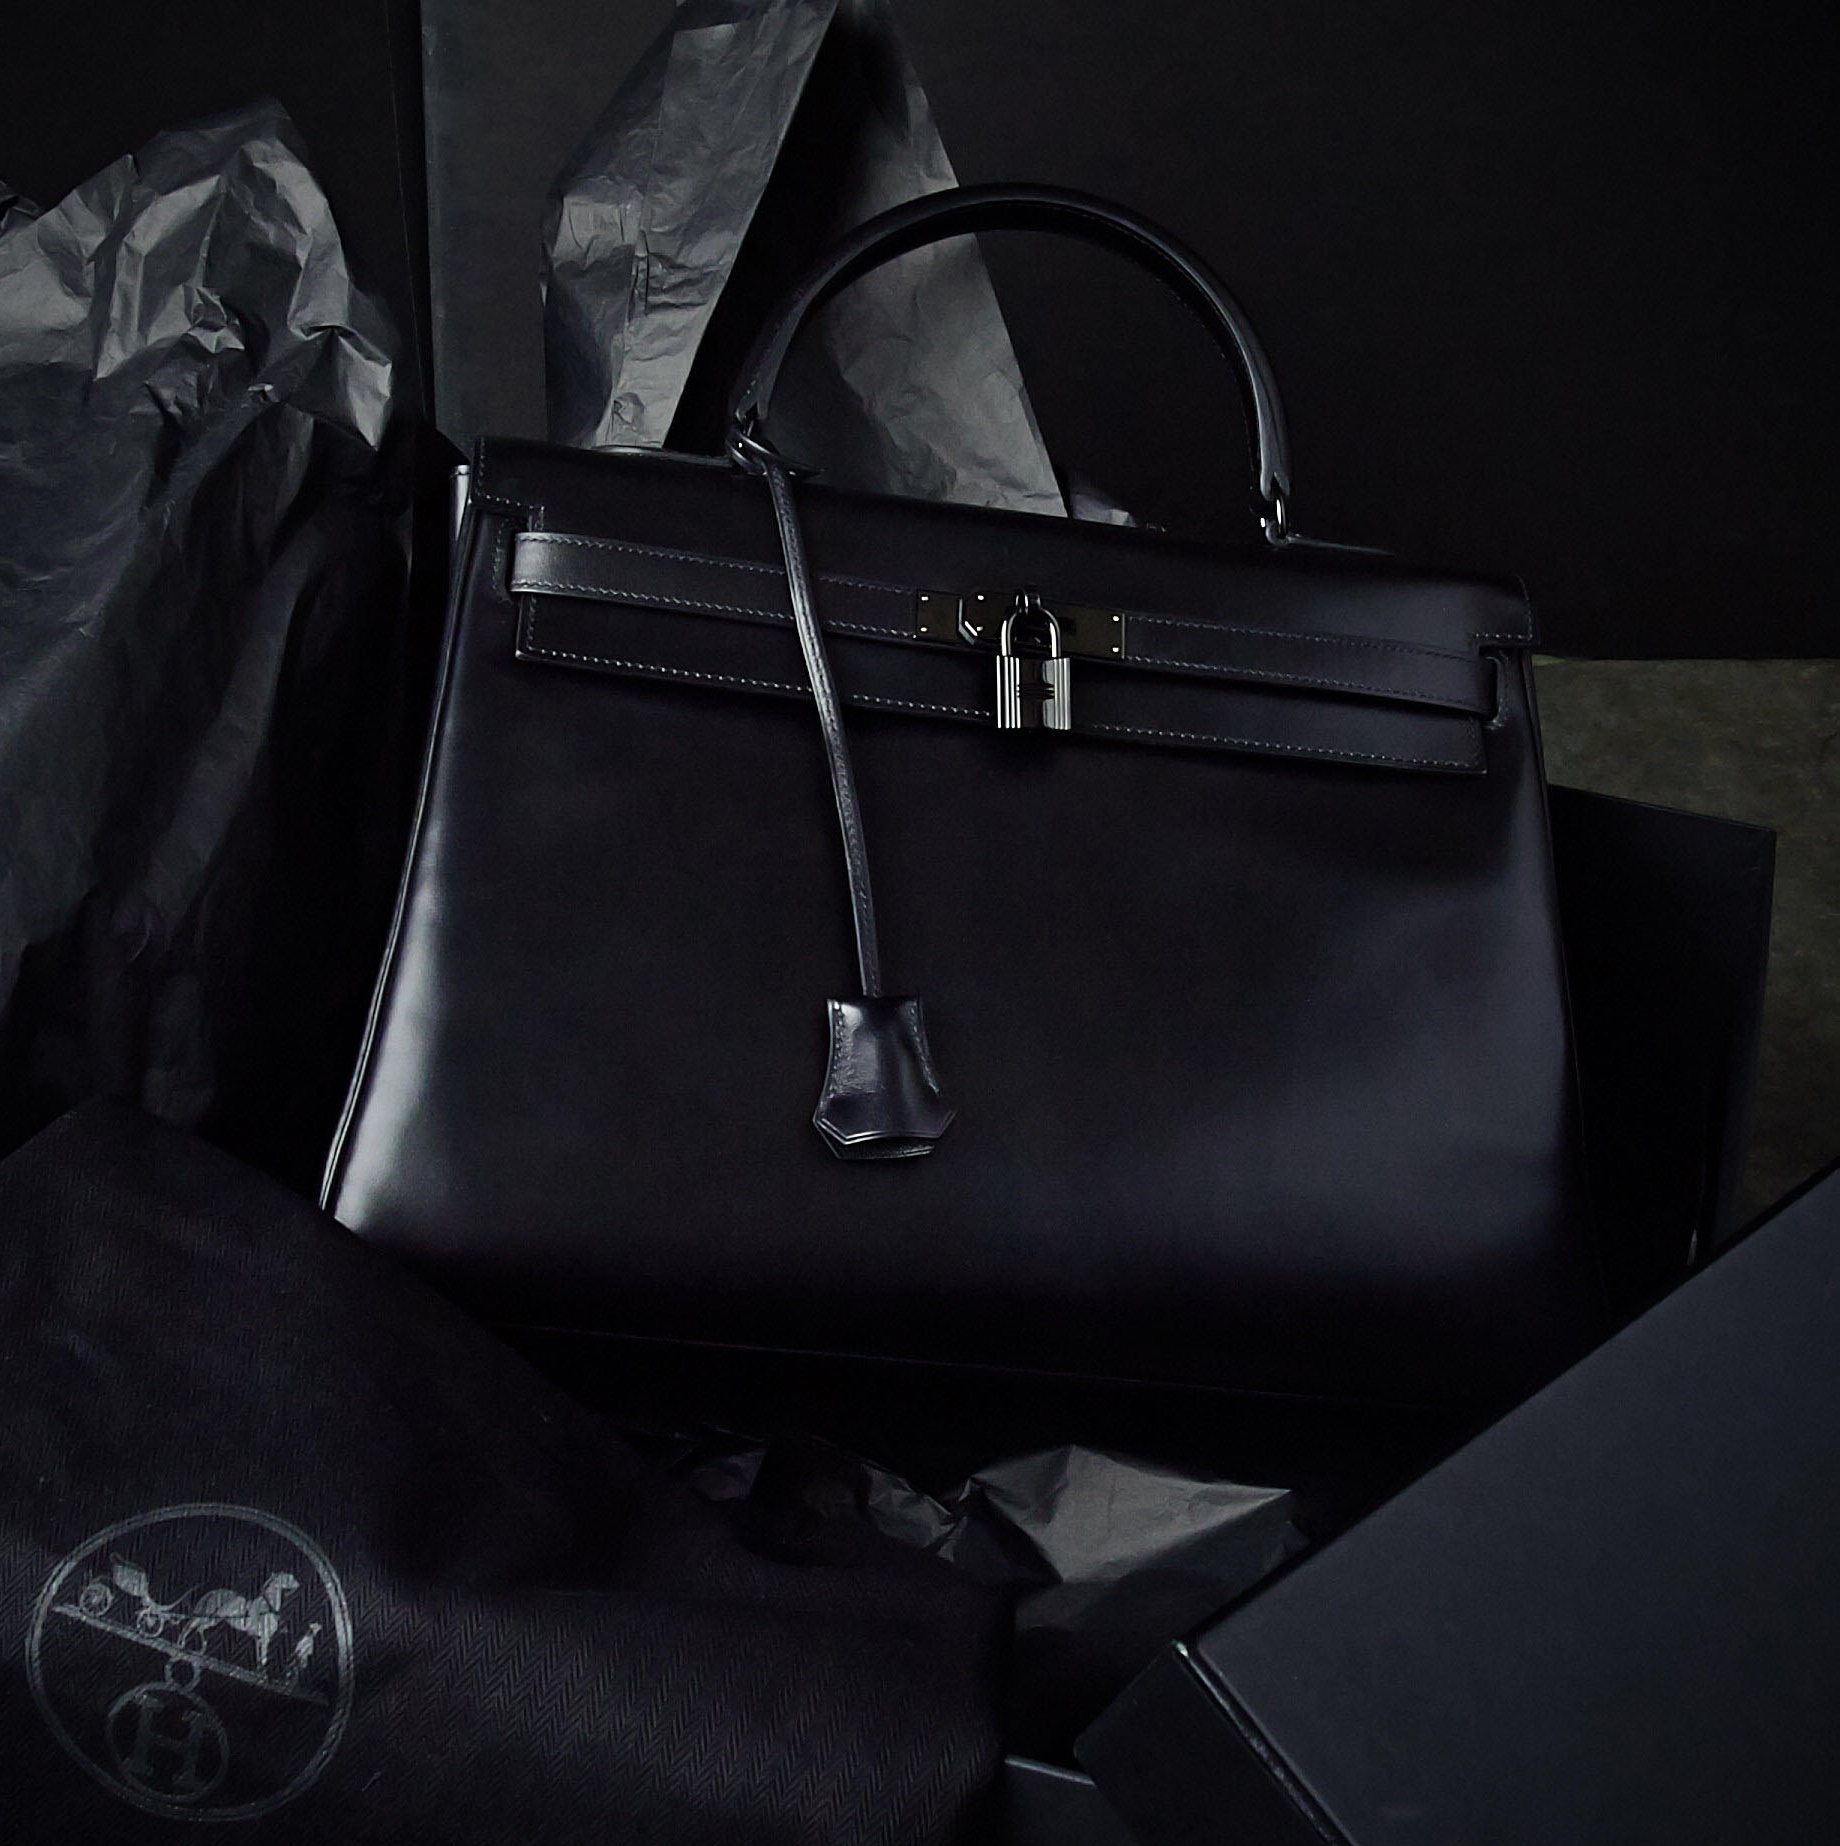 Hermes Black on Black SO BLACK Kelly Bag   Yoogi's Closet Authenticated Pre-Owned Luxury yoogiscloset.com